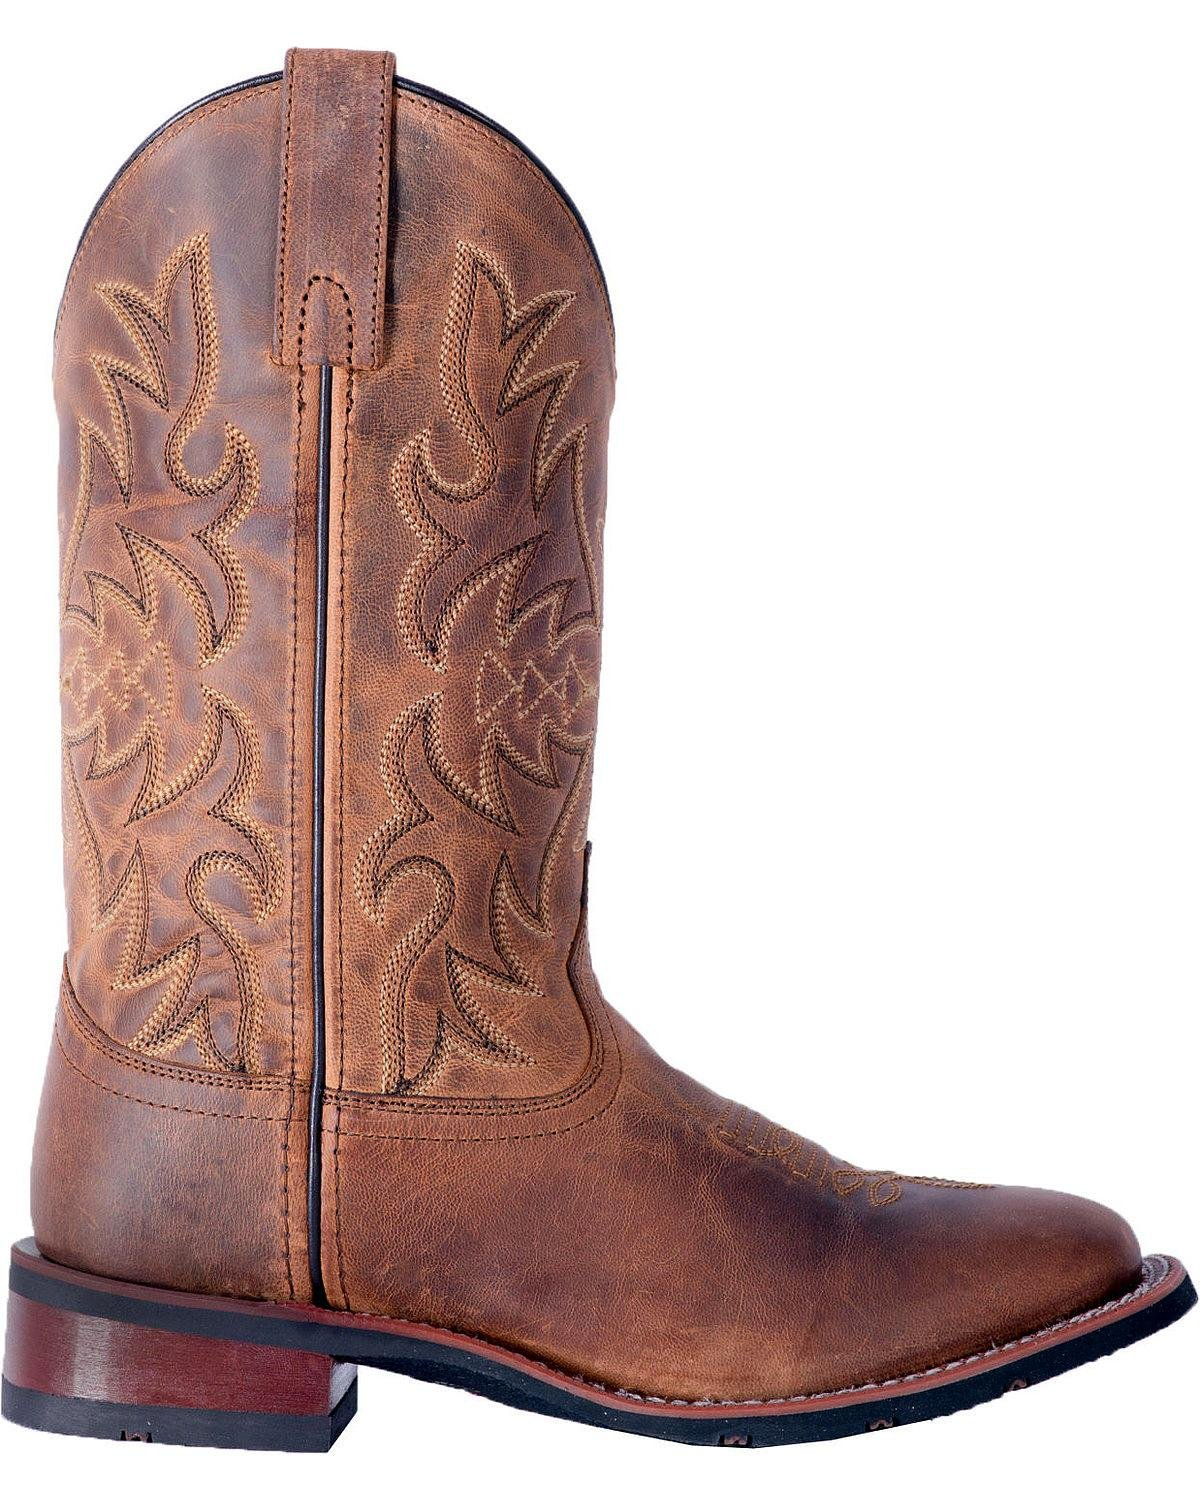 Laredo Women's Anita Cowgirl Boot Square 8 Toe - 5602 B079N945WN 8 Square B(M) US|Tan e928a6